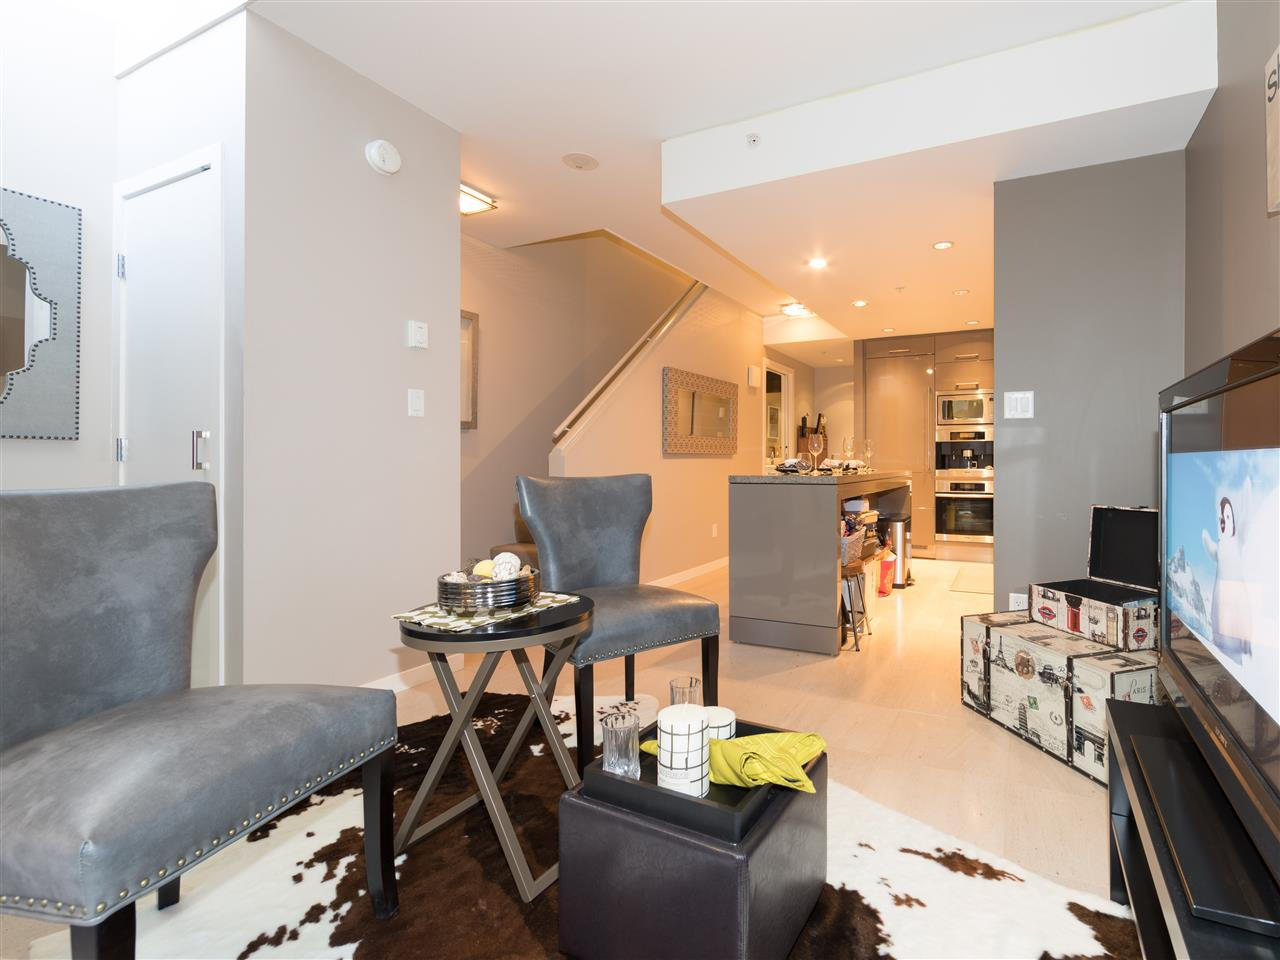 Condo Apartment at TH8 5991 WALTER GAGE ROAD, Unit TH8, Vancouver West, British Columbia. Image 4